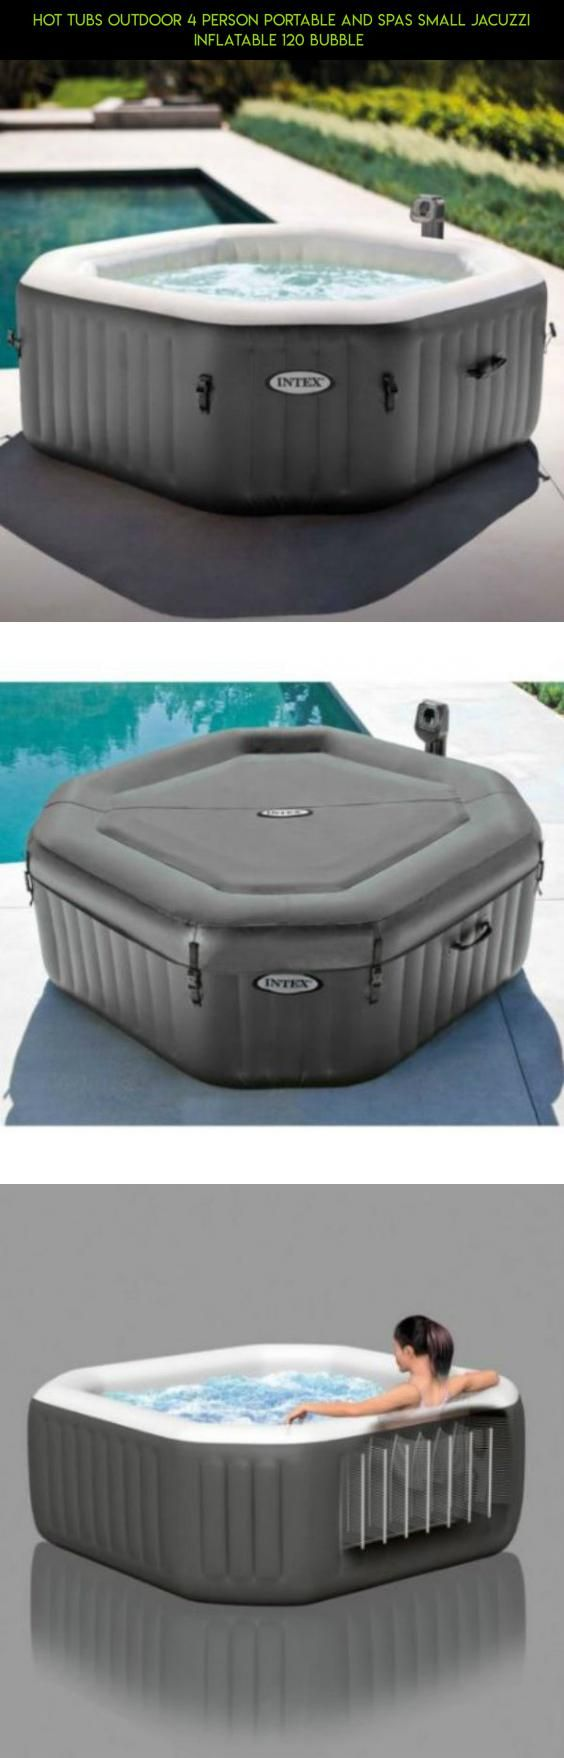 Hot Tubs Outdoor 4 Person Portable And Spas Small Jacuzzi Inflatable ...